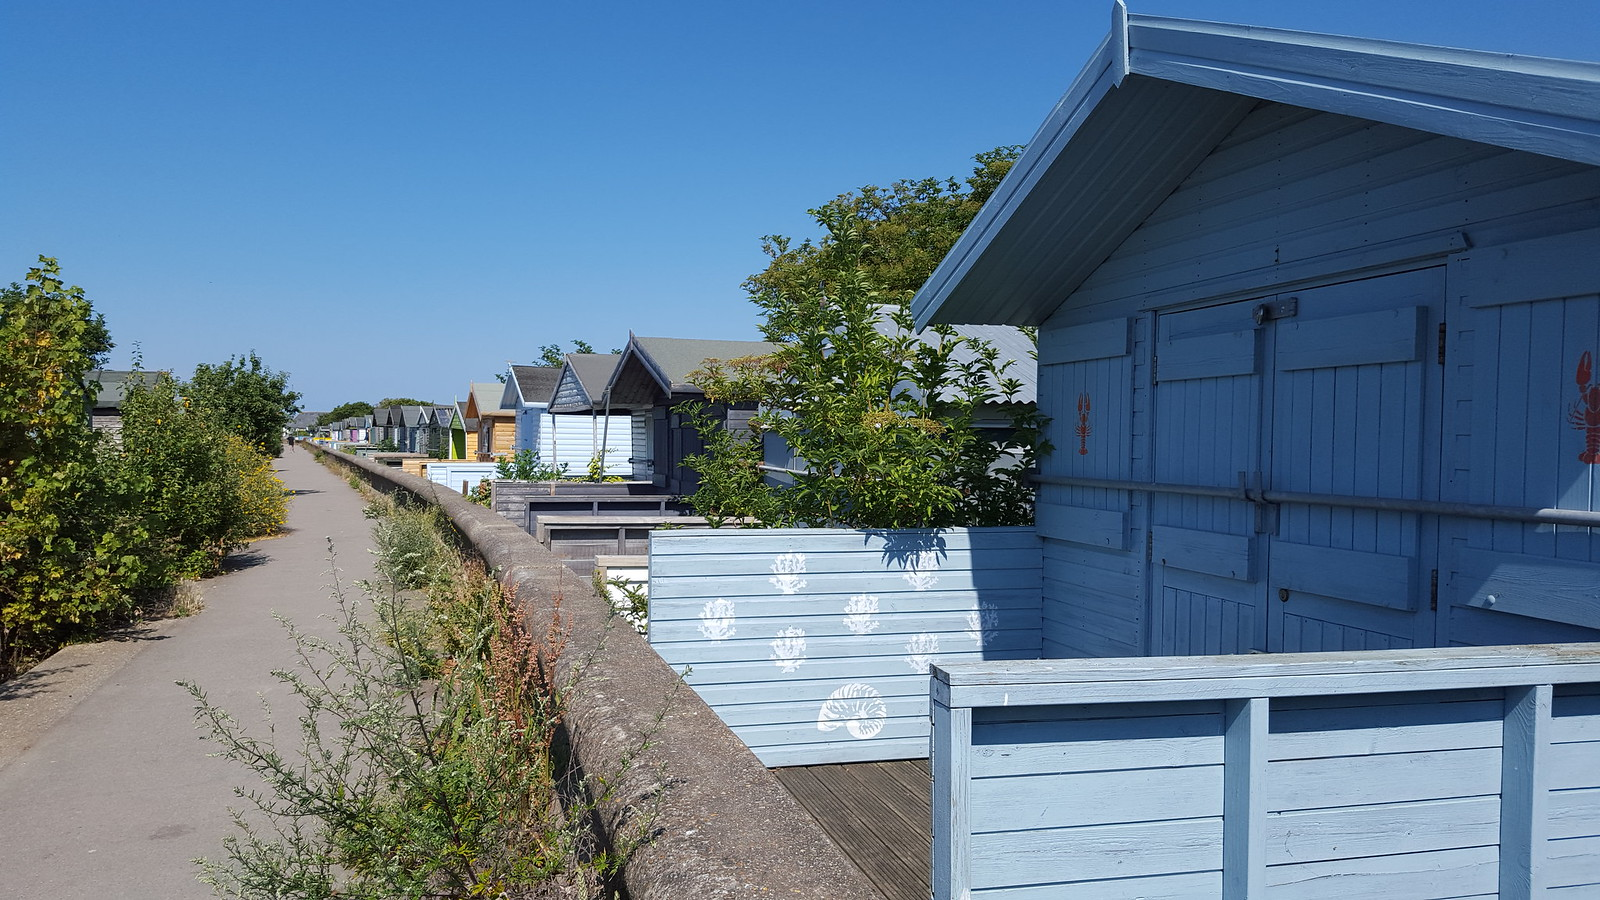 Faversham to Whitstable walk